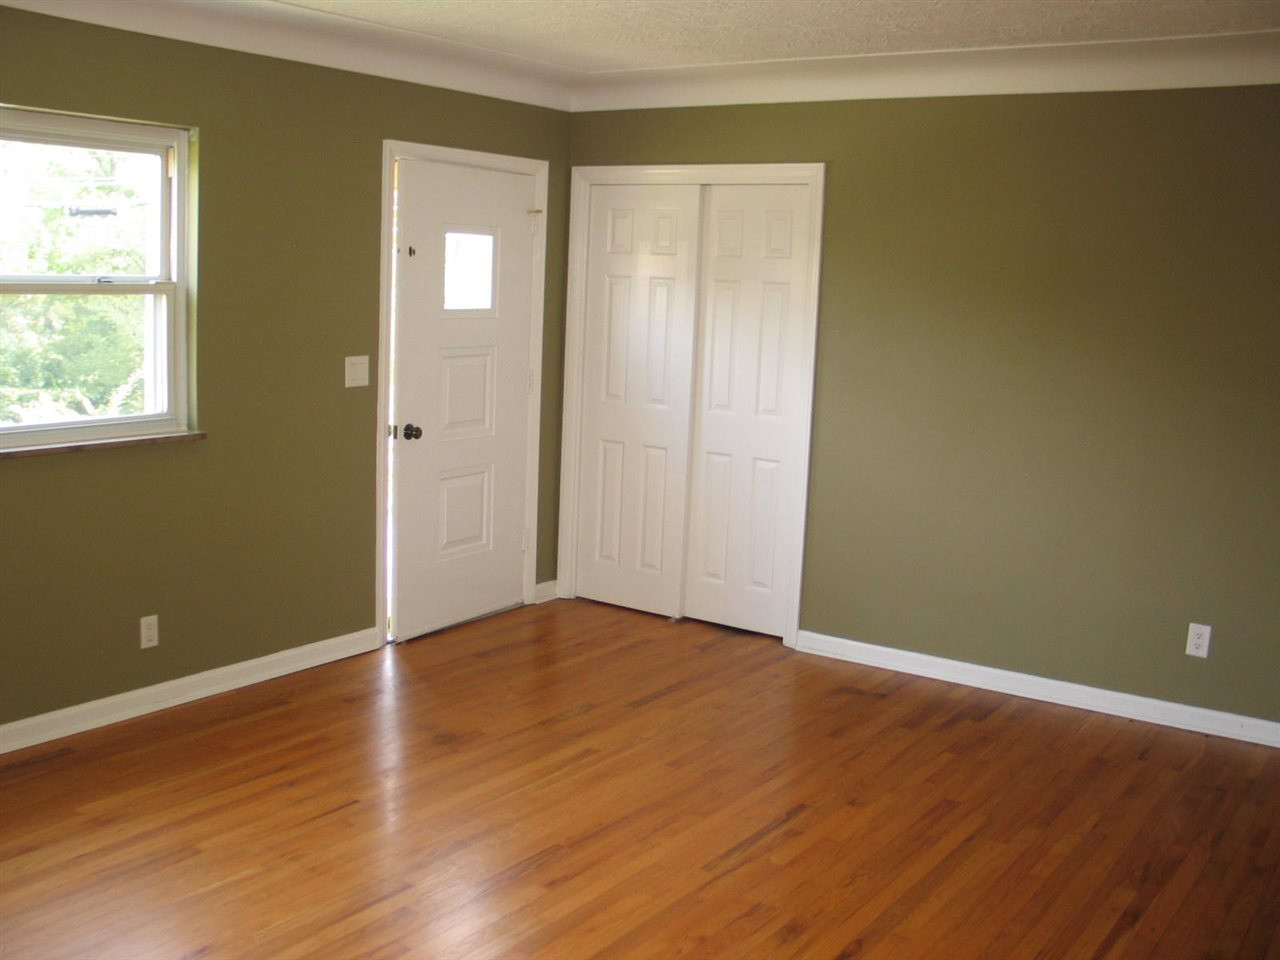 Photo 3 for 1330 Waterworks Rd Newport, KY 41075